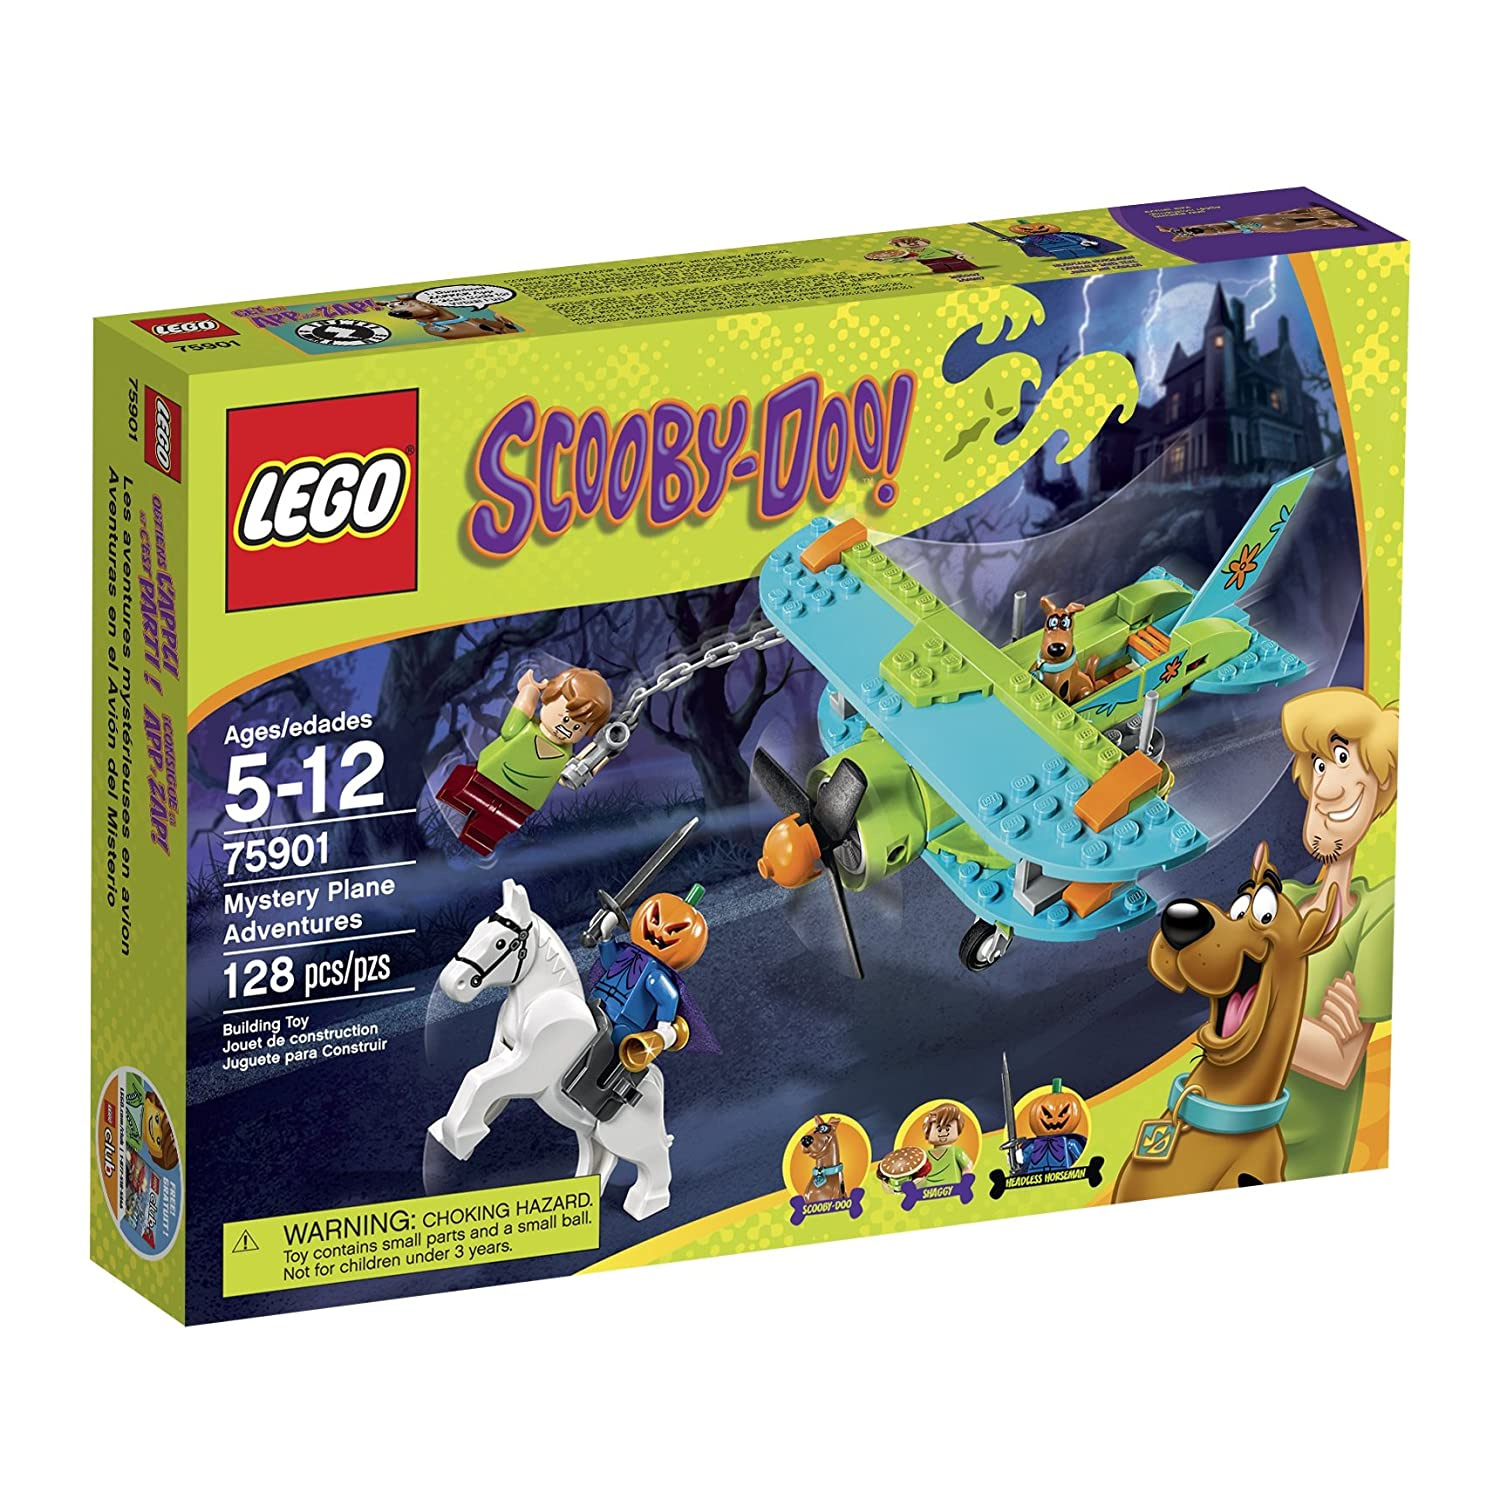 Top 5 Best LEGO Scooby Doo Sets Reviews in 2021 9